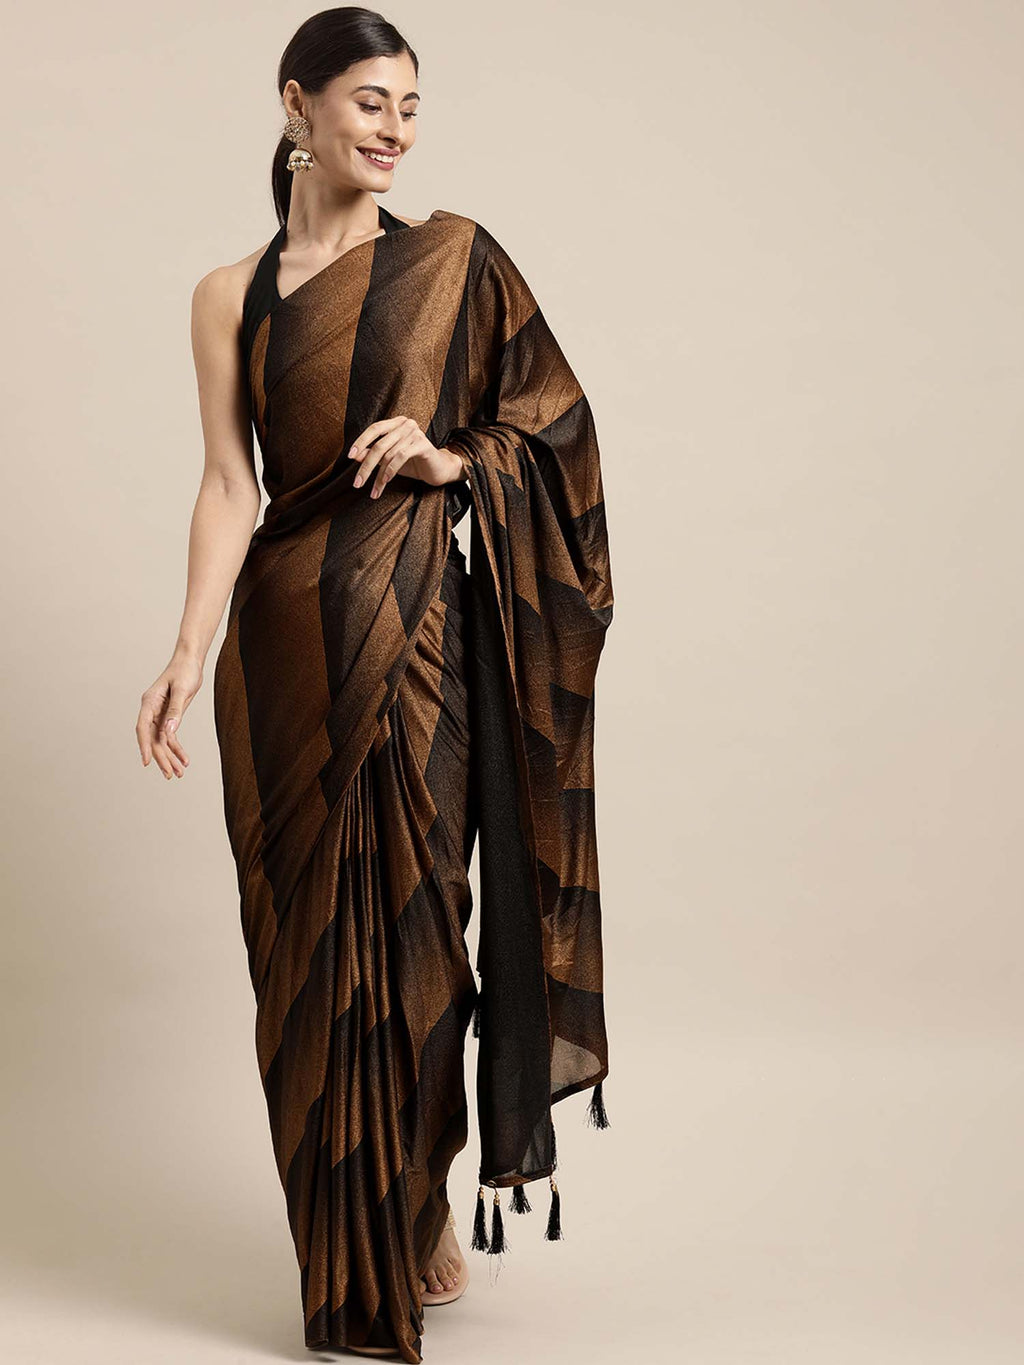 Brown & Black Color Poly Crepe Saree With Tassels & Fancy Blouse - Riviera Closet